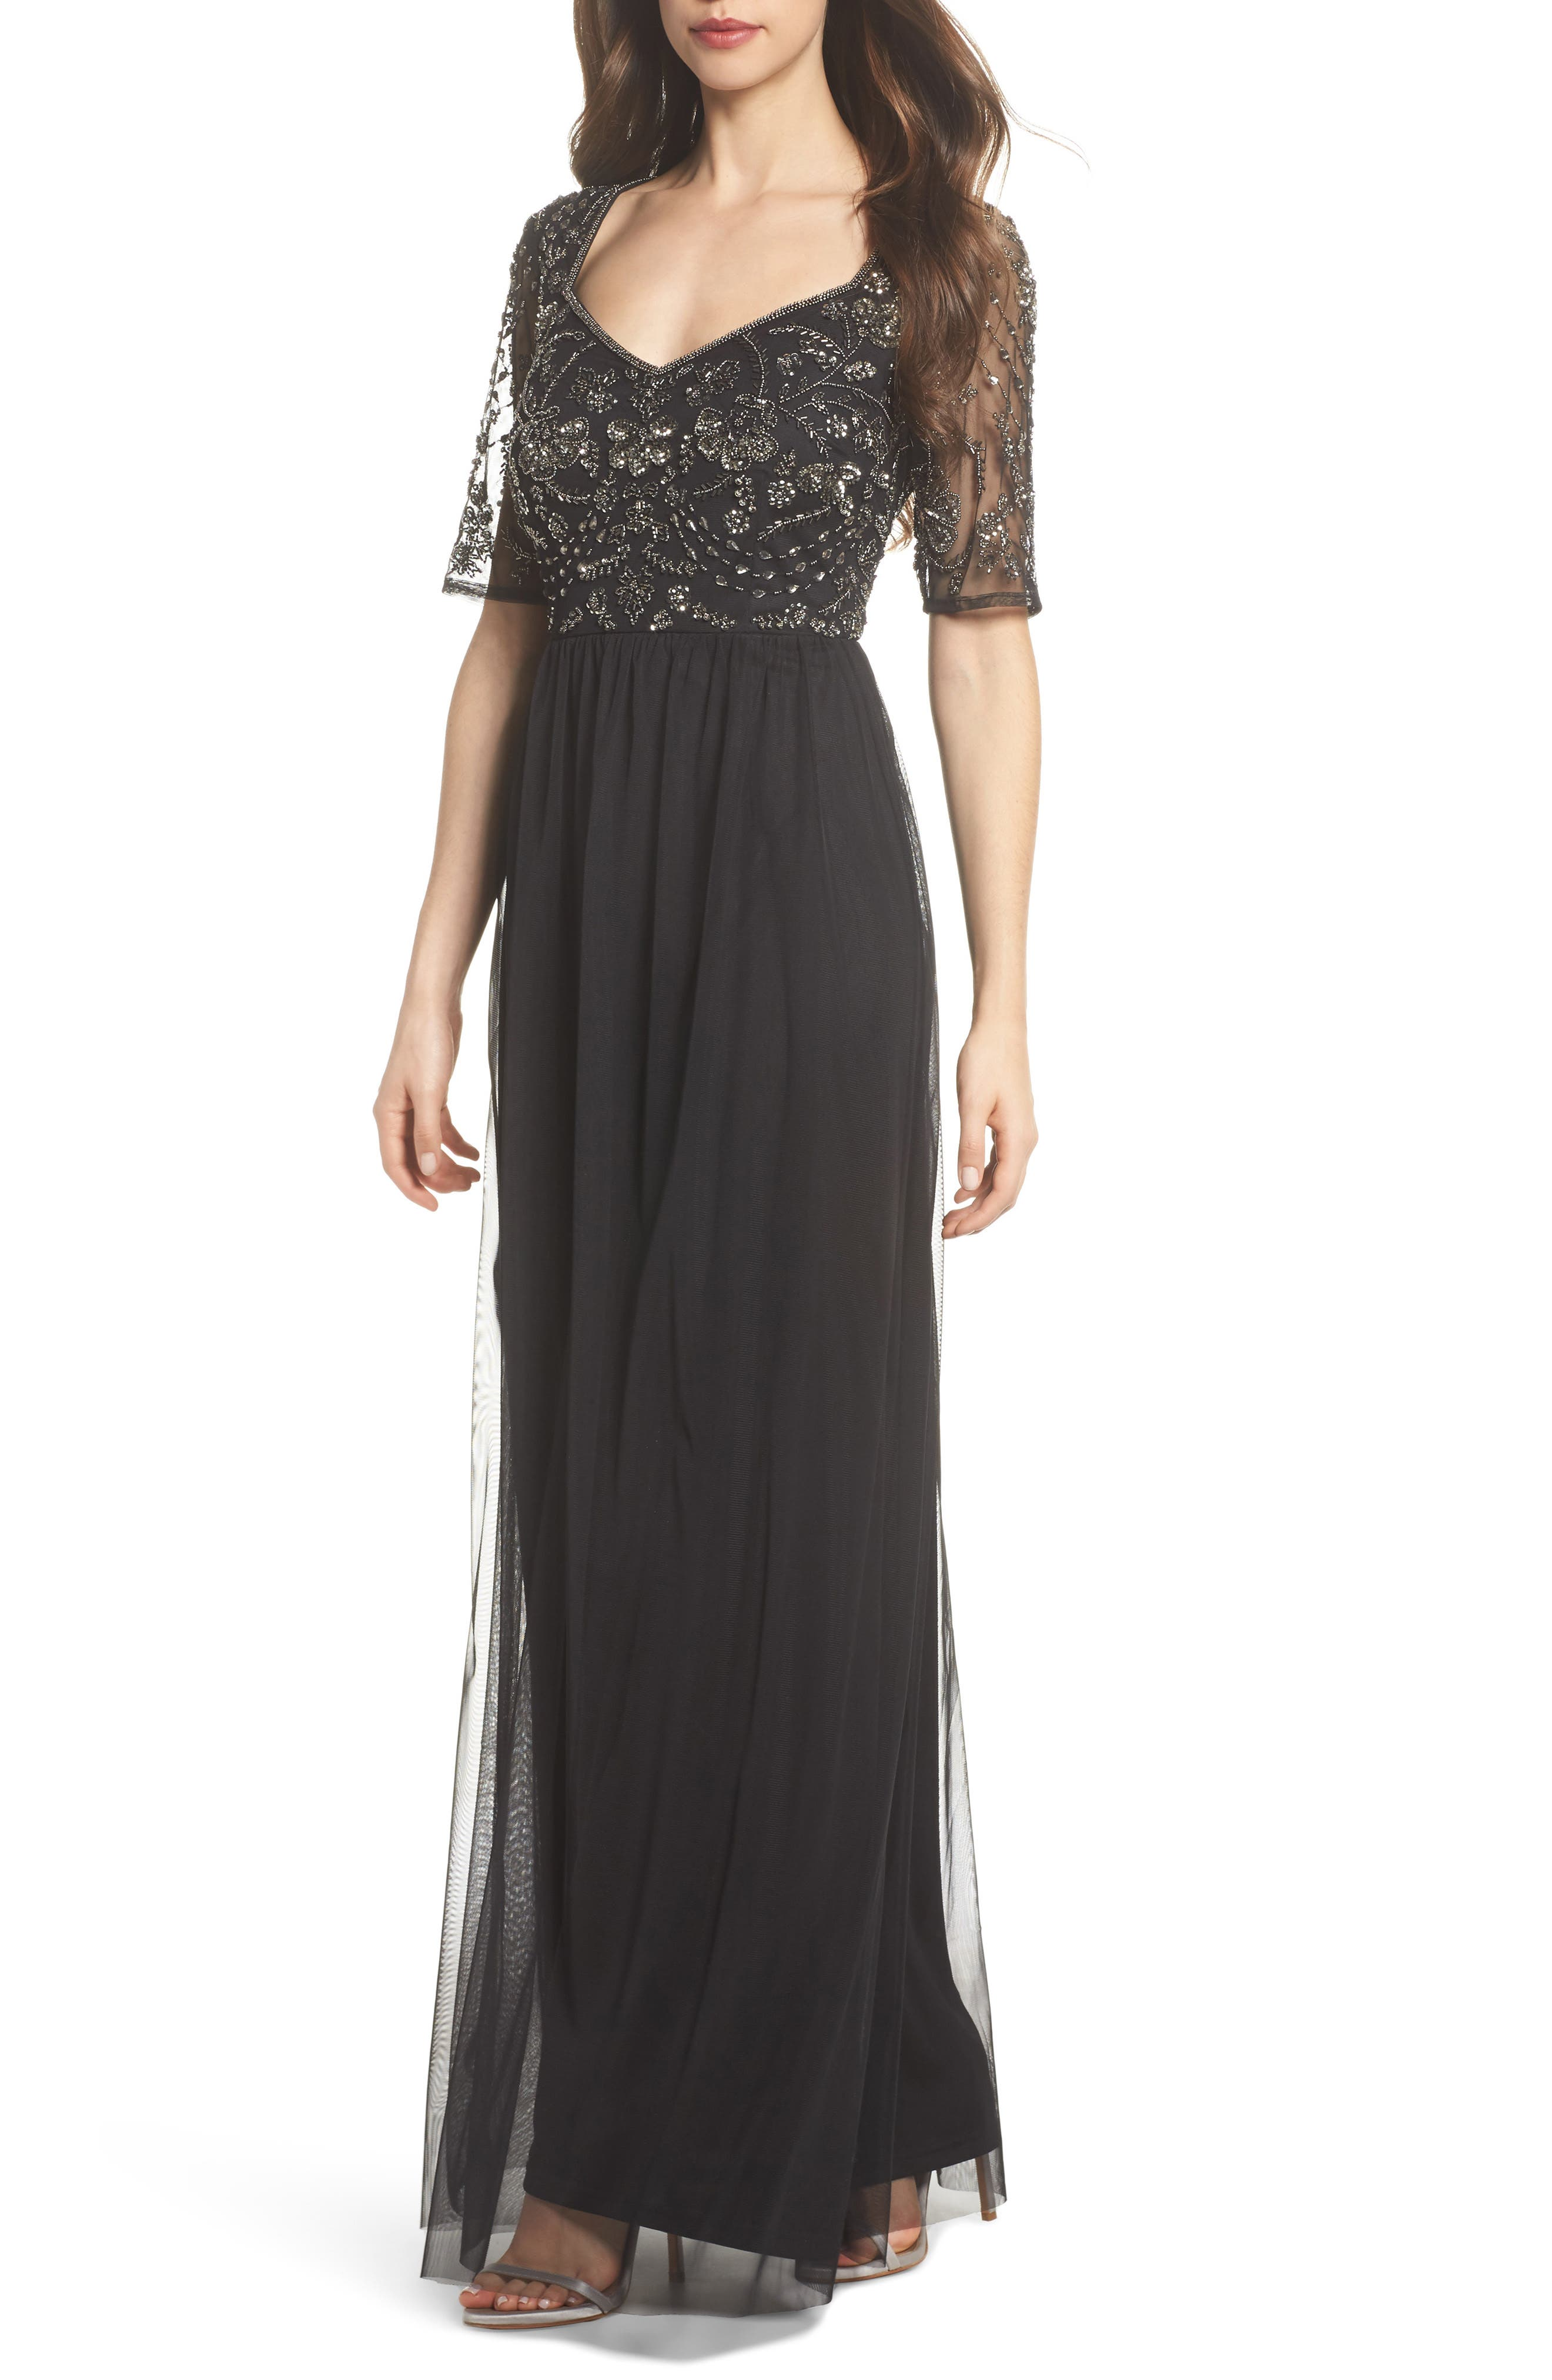 Alternate Image 1 Selected - Adrianna Papell Beaded Bodice Tulle Gown